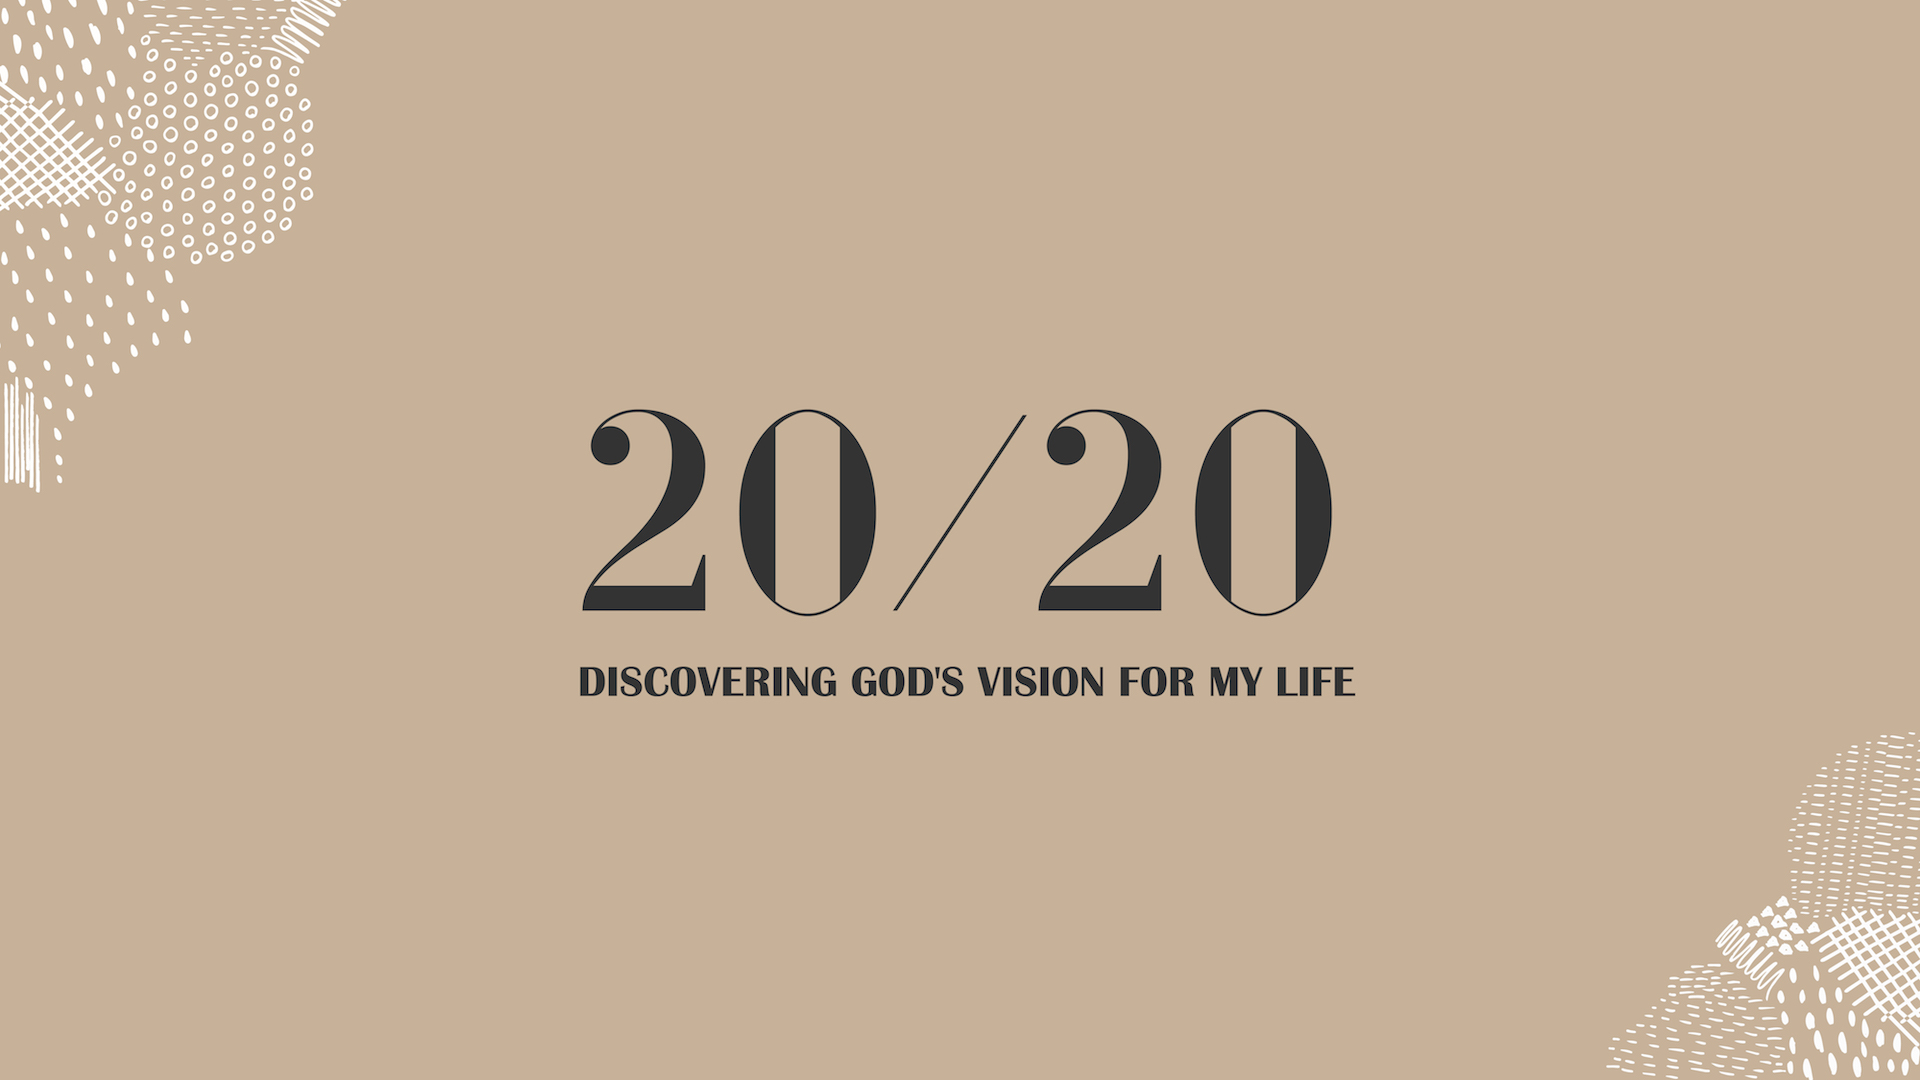 20/20 - STARTING THE YEAR WITH GOD-EYE VISION. WHERE IS GOD DIRECTING US IN THIS NEW SEASON? DISCOVER GOD'S VISION FOR YOUR LIFE.